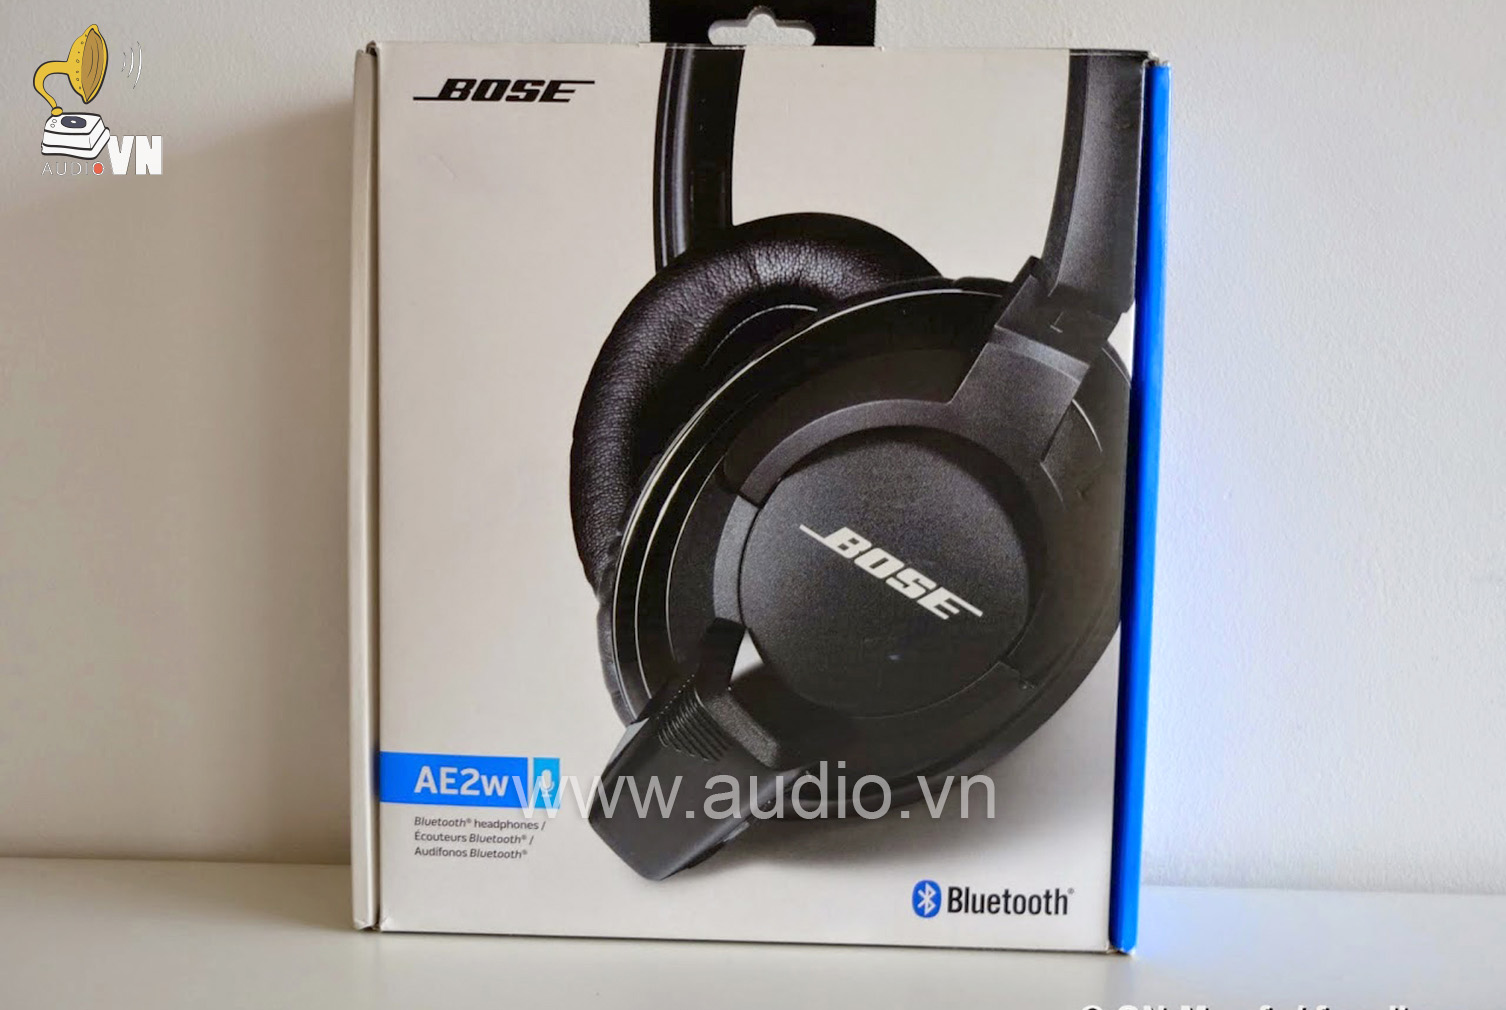 Bluetooth Bose AE2w